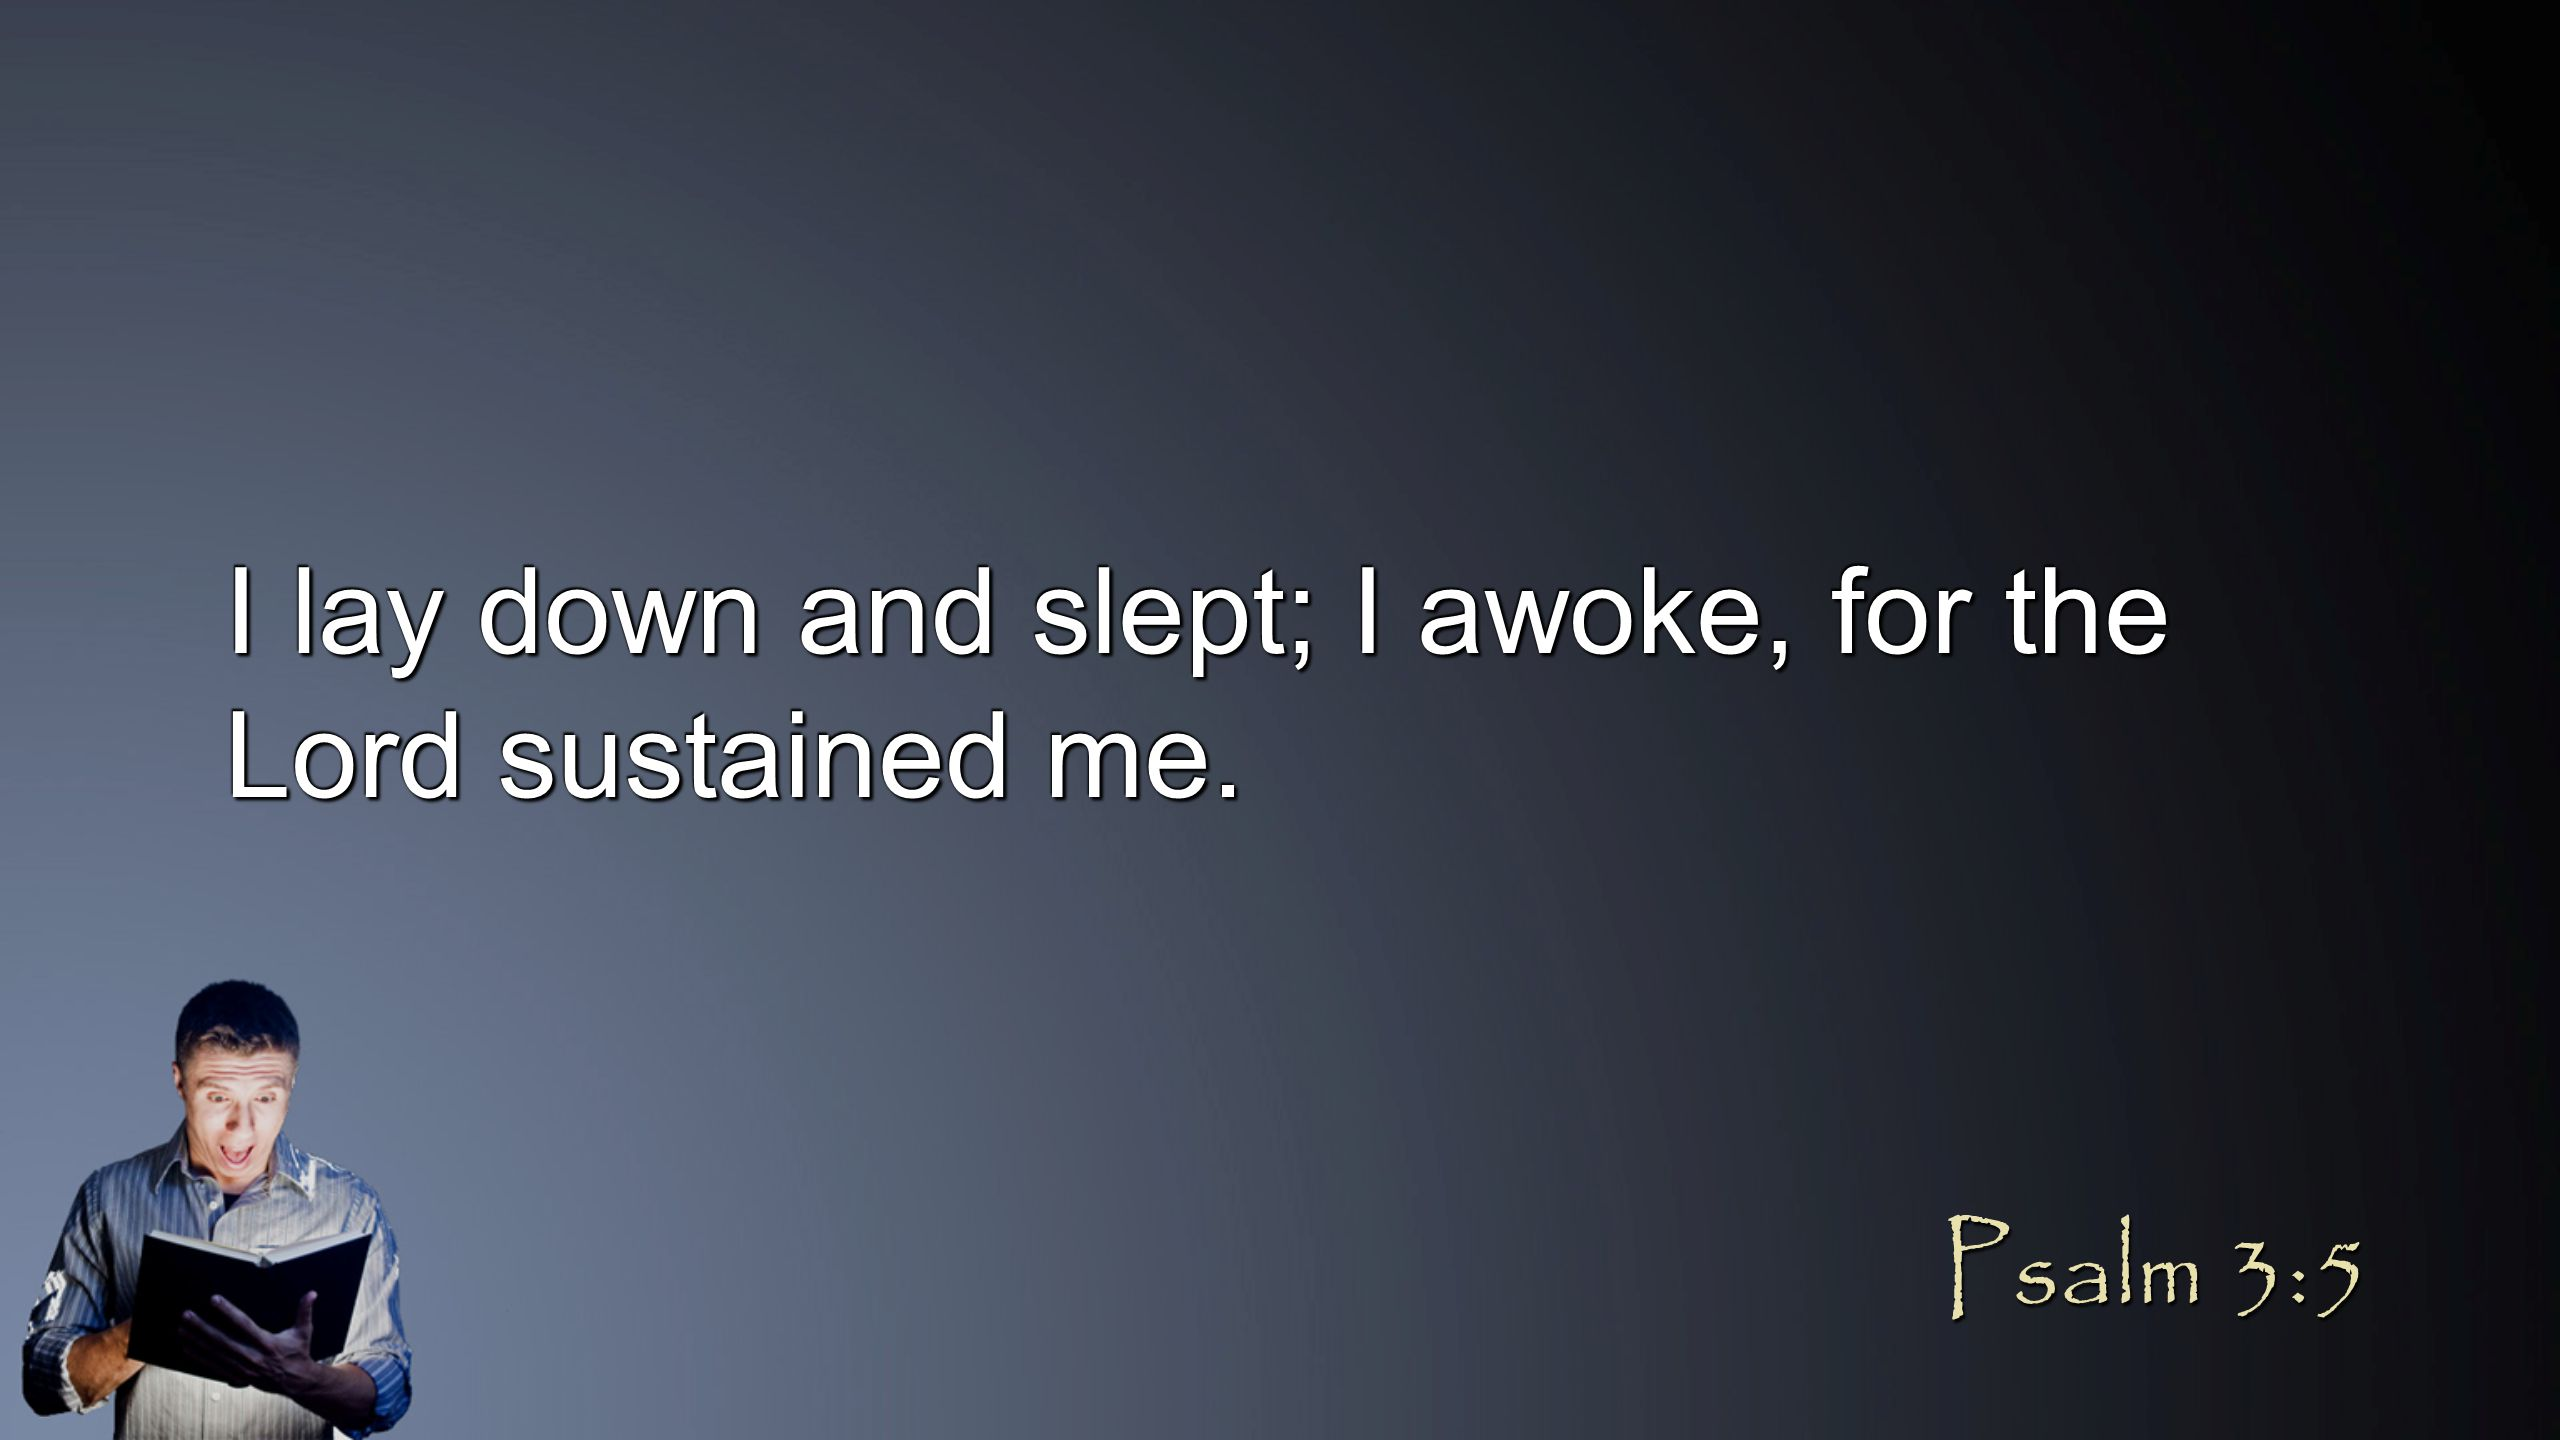 I lay down and slept; I awoke, for the Lord sustained me. Psalm 3:5